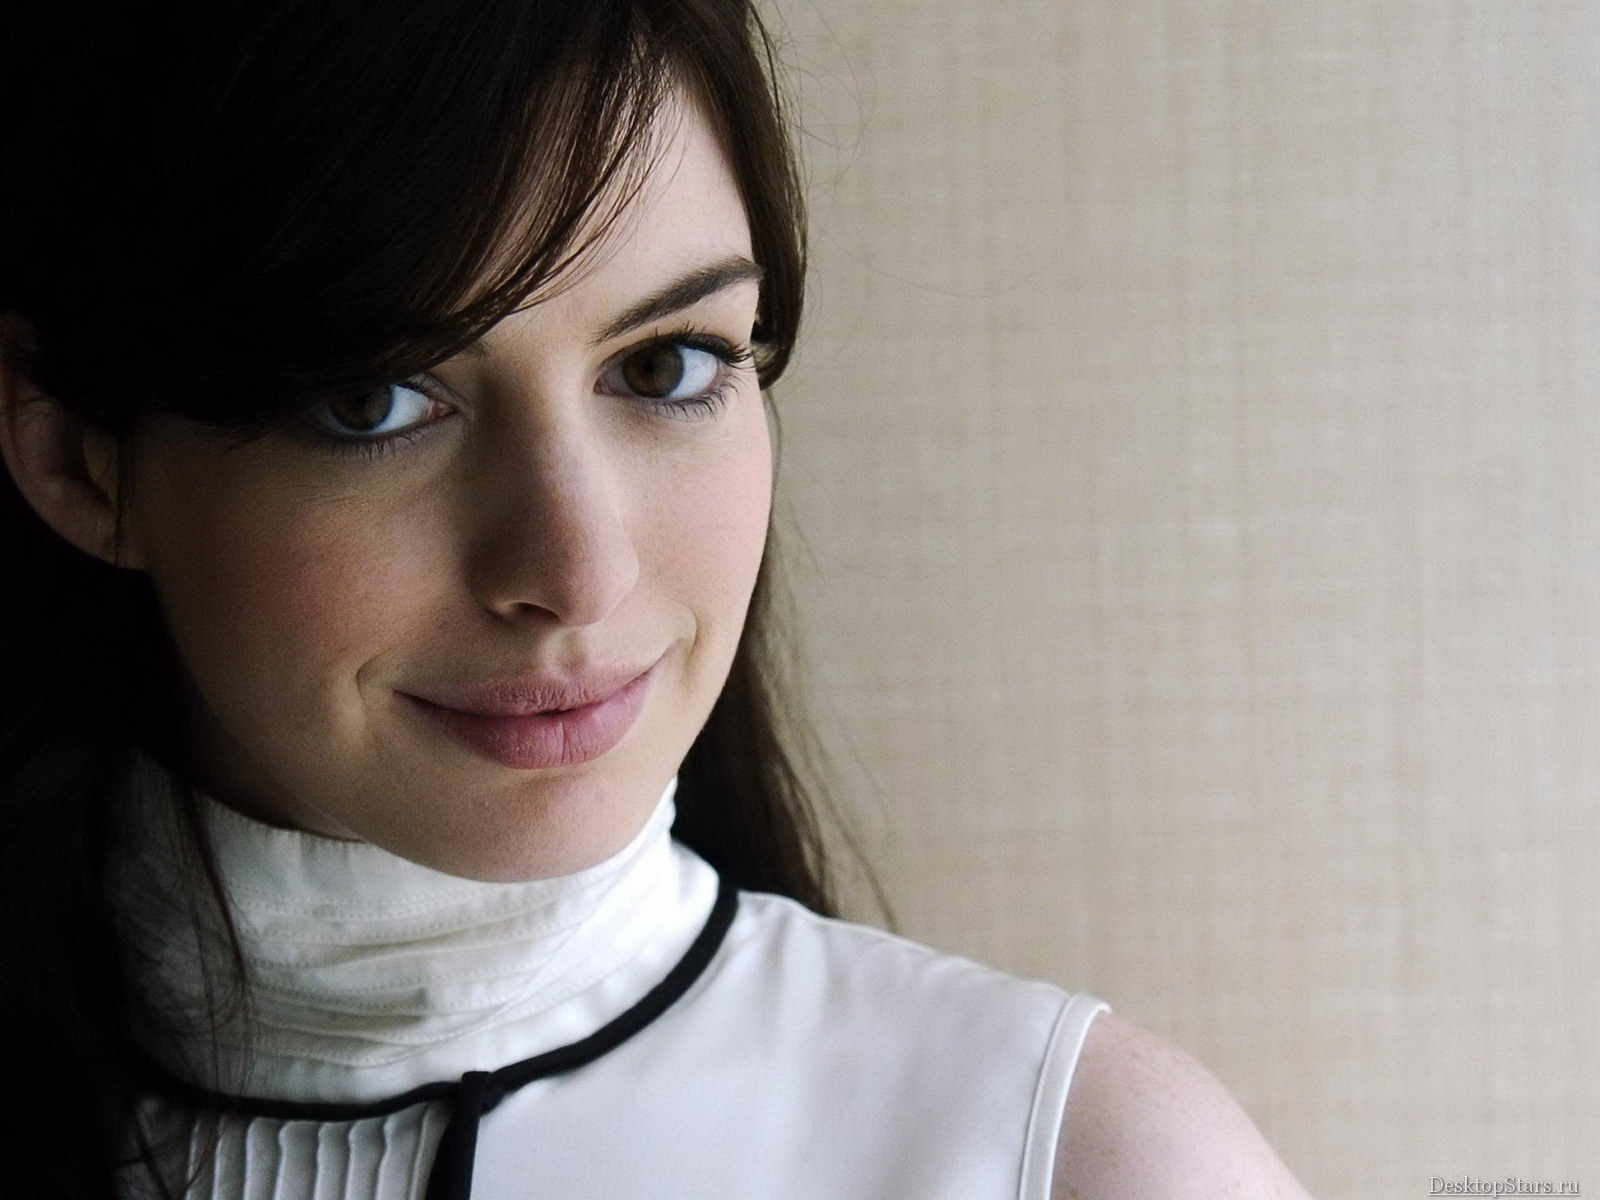 http://2.bp.blogspot.com/-K-gr4CrnHpQ/Ty2eH7hy8VI/AAAAAAAACLc/La7nAGrADYg/s1600/Anne-Hathaway-Hollywood-actress+7.jpg